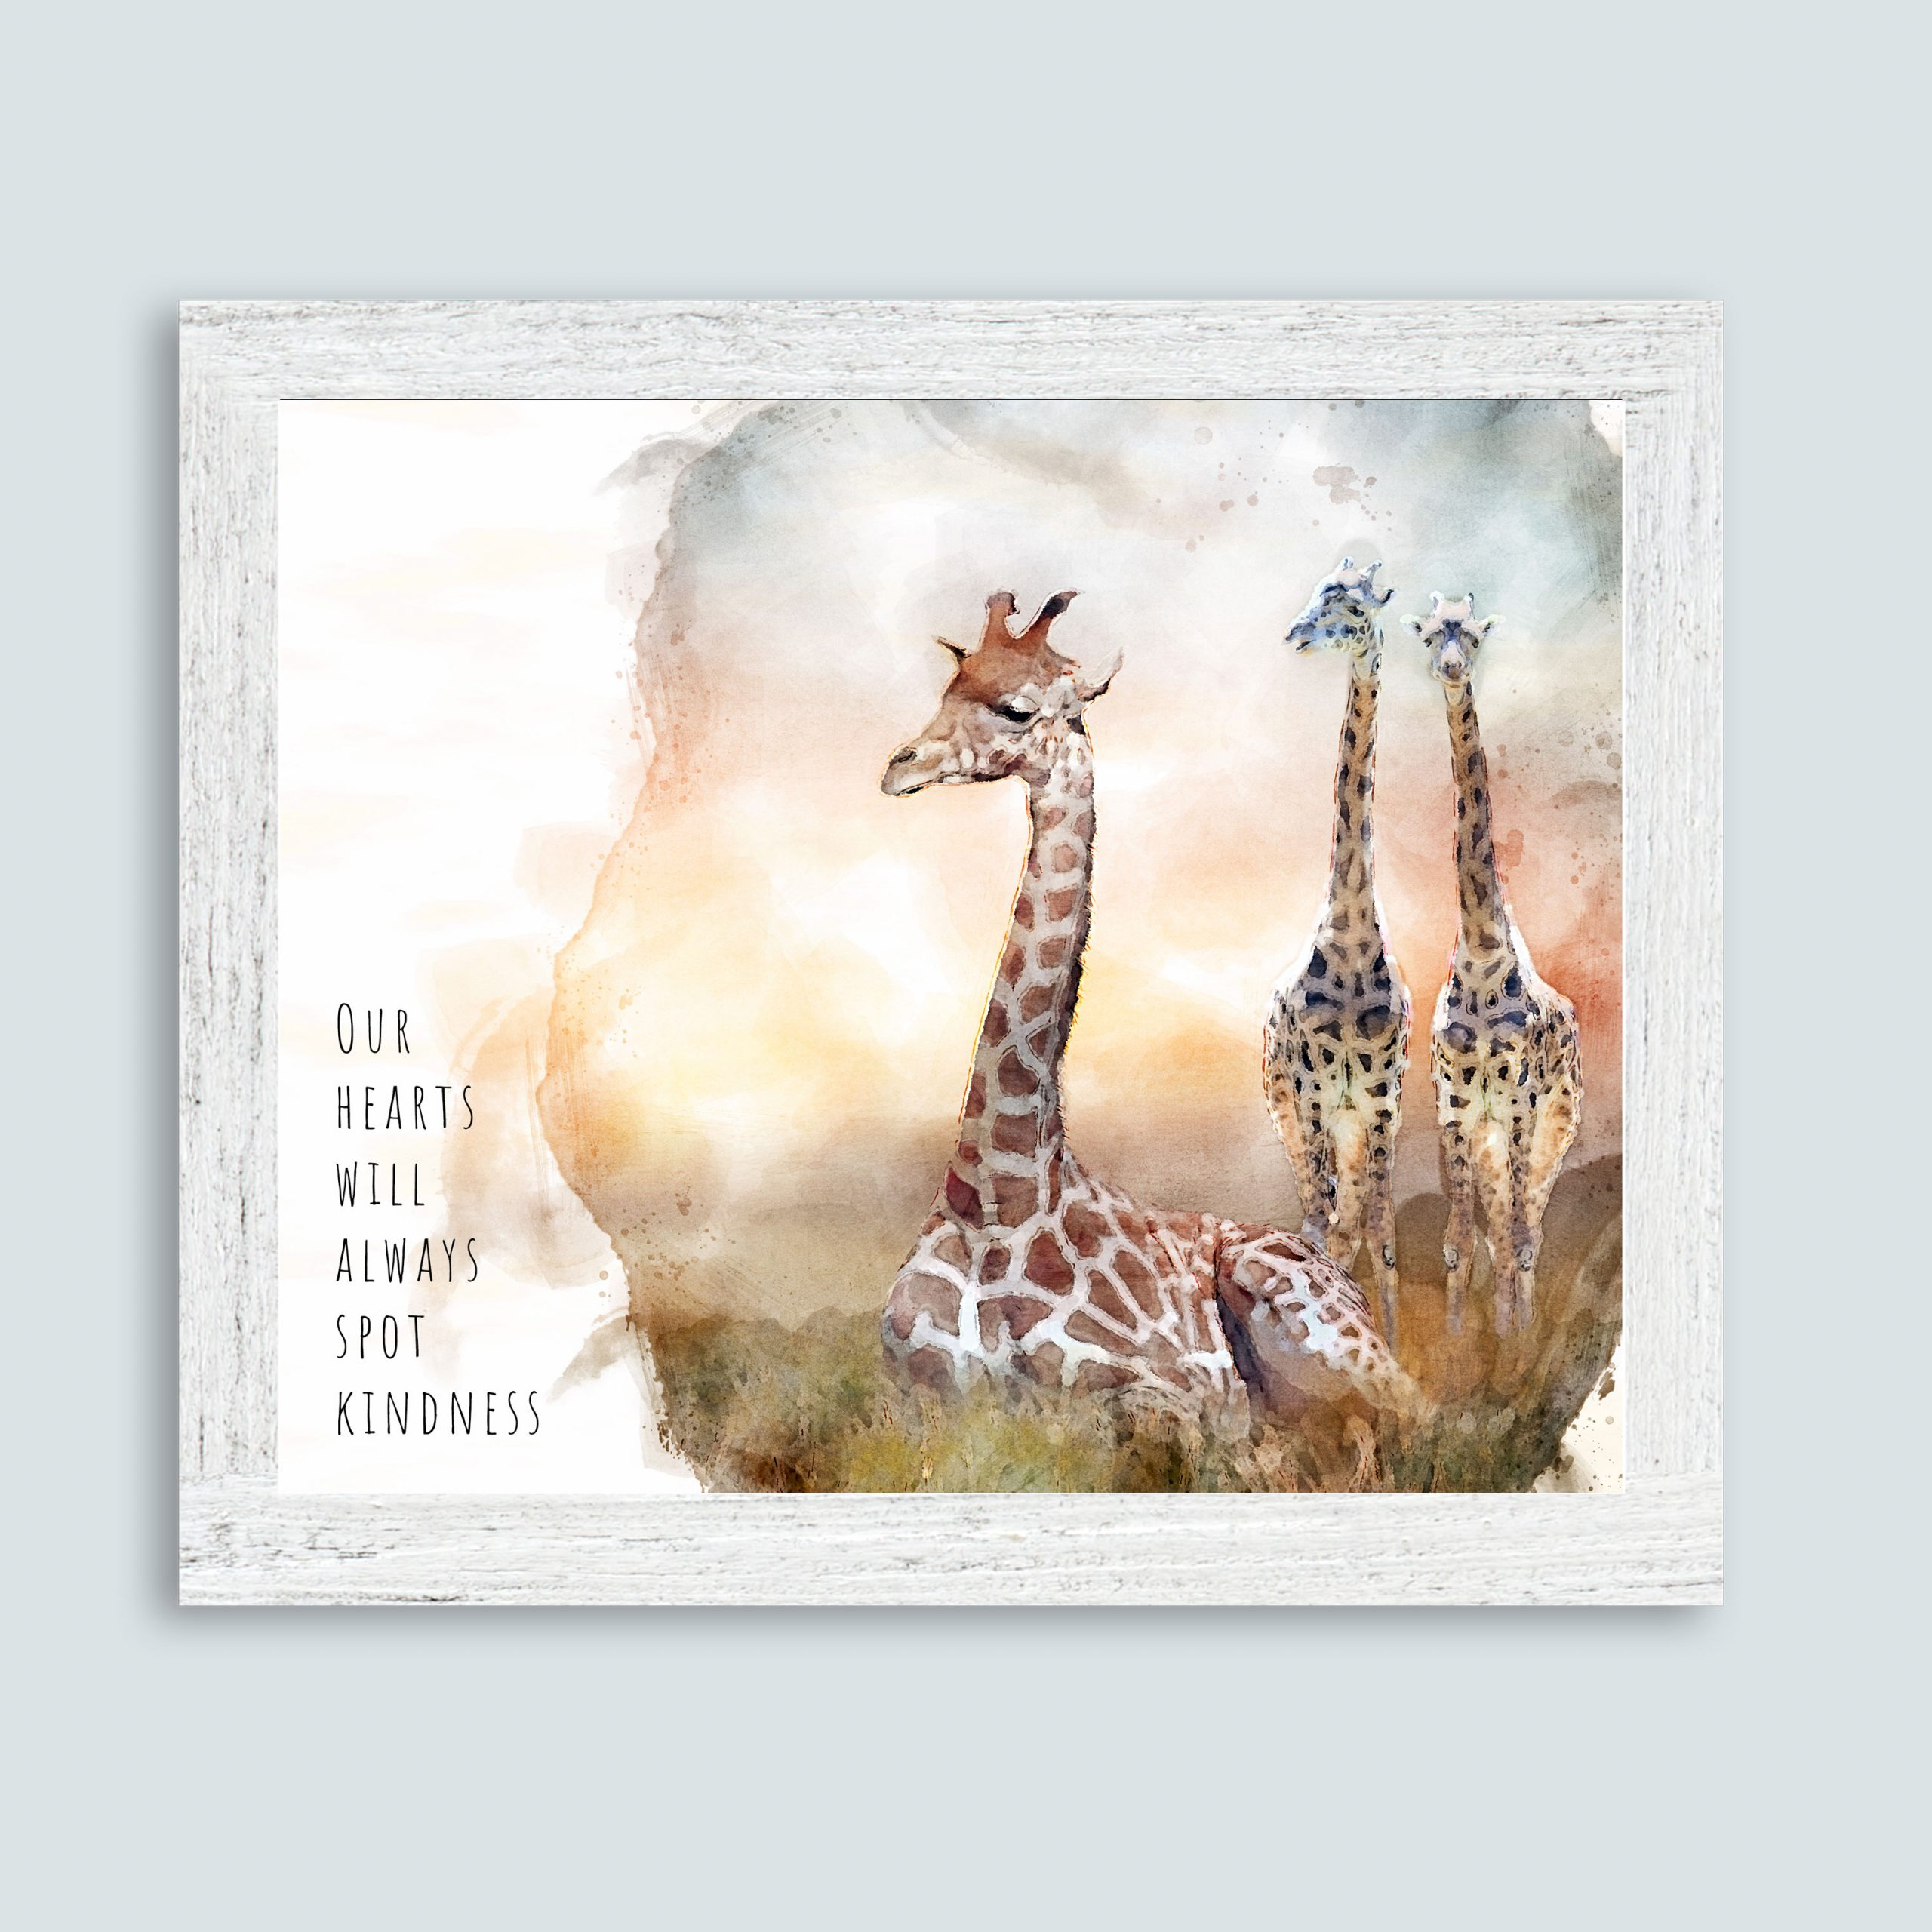 """A watercolor of a mother giraffe sitting peacefully in grass as two young giraffes approach. The text reads """"Our hearts will always spot kindness."""""""